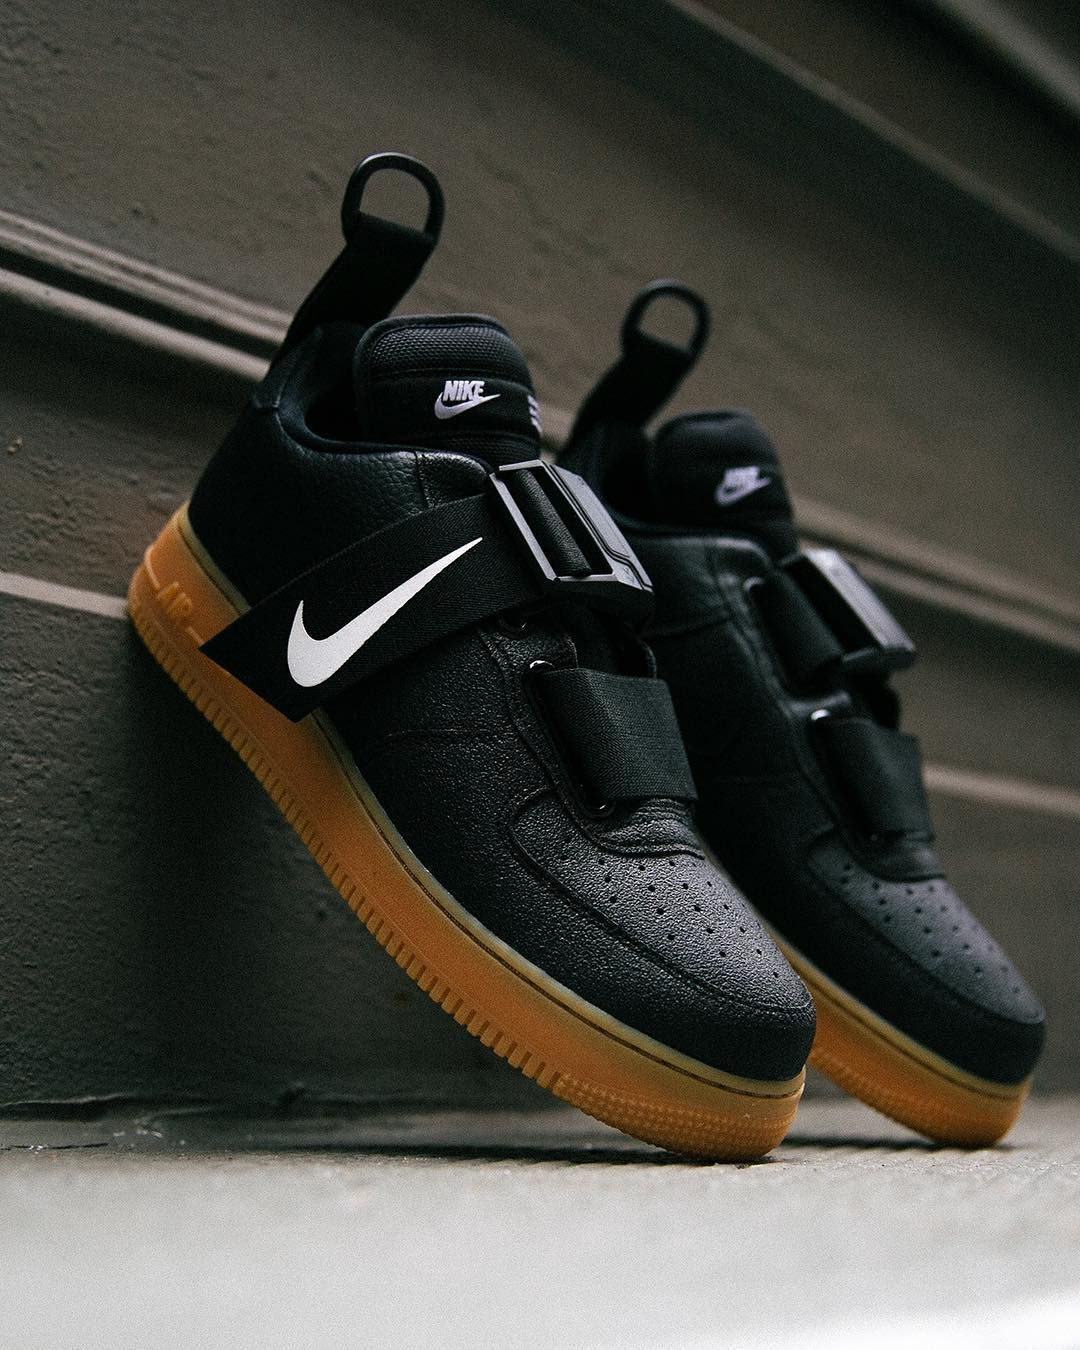 buy popular 68b10 9edb6 Nike Air Force 1 Utility BlackGum + Sequoia Available Now, In-Store  and Online